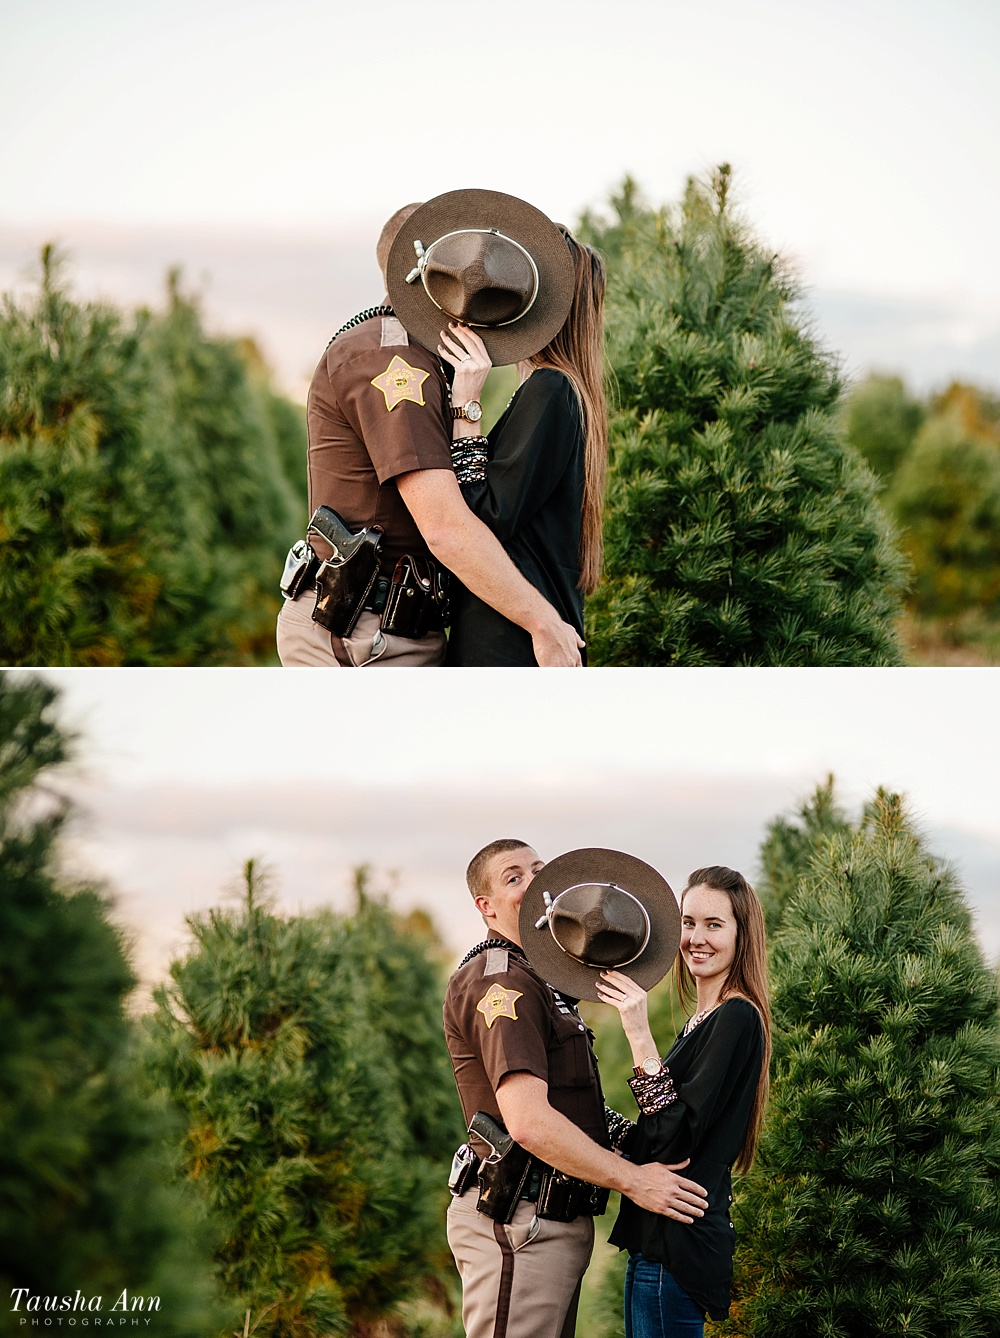 Surprise Proposal at Country Cove Christmas Tree Farm. Police officer surprise proposal at Sunset. Forehead to Forehead between Christmas Trees. Hiding behind patrol hat.